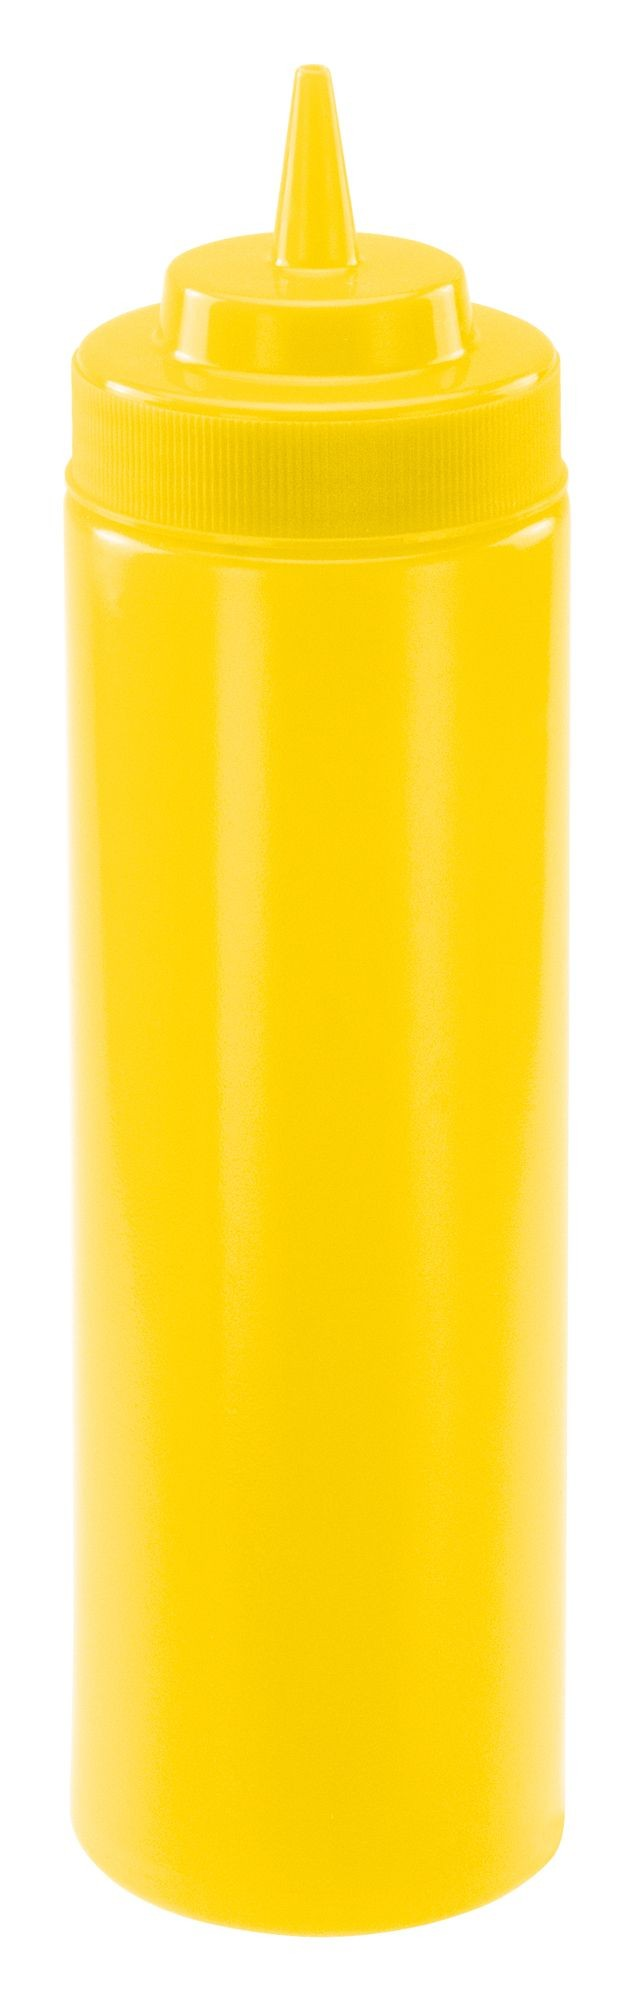 Yellow Plastic 24 Oz. Wide-Mouth Squeeze Bottle